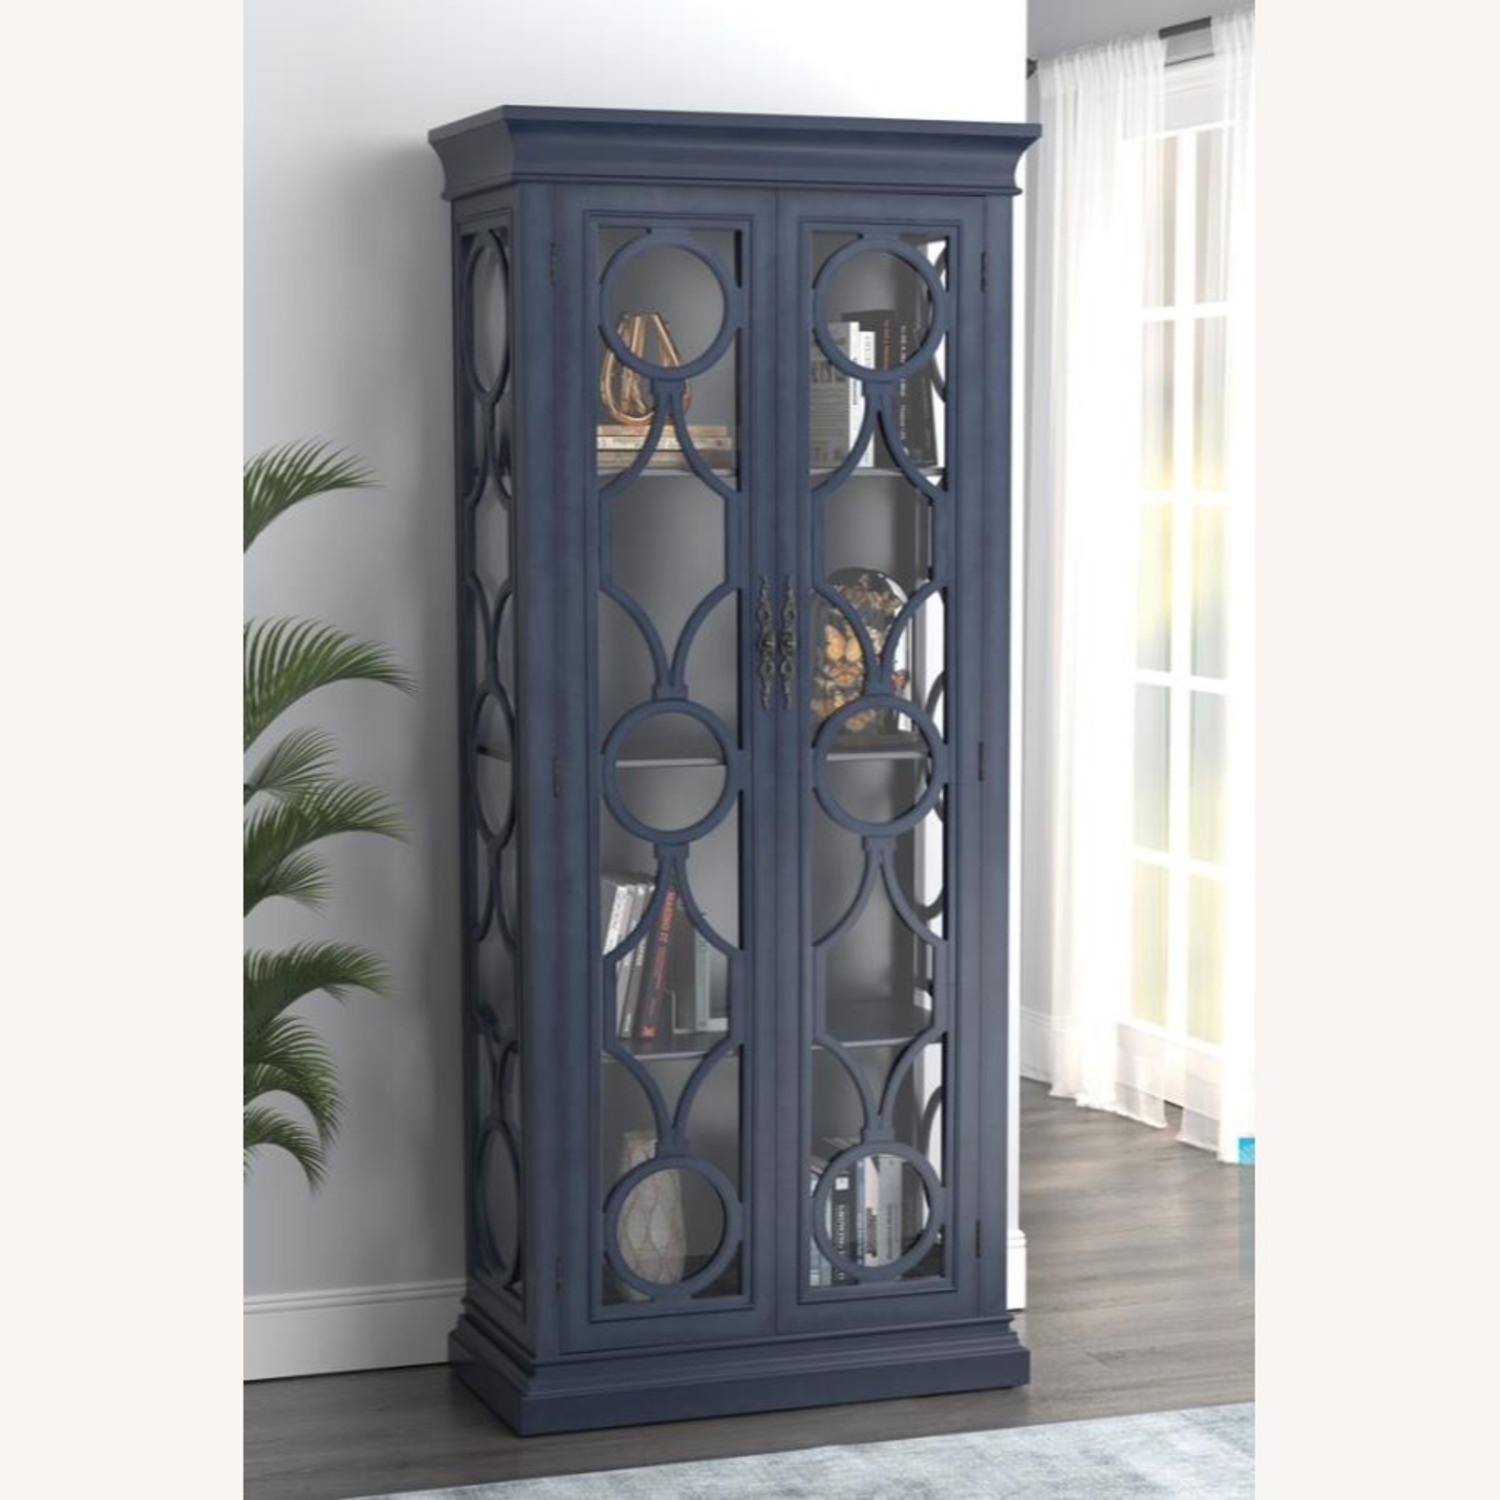 Tall Accent Cabinet In Grey Blue Finish - image-5